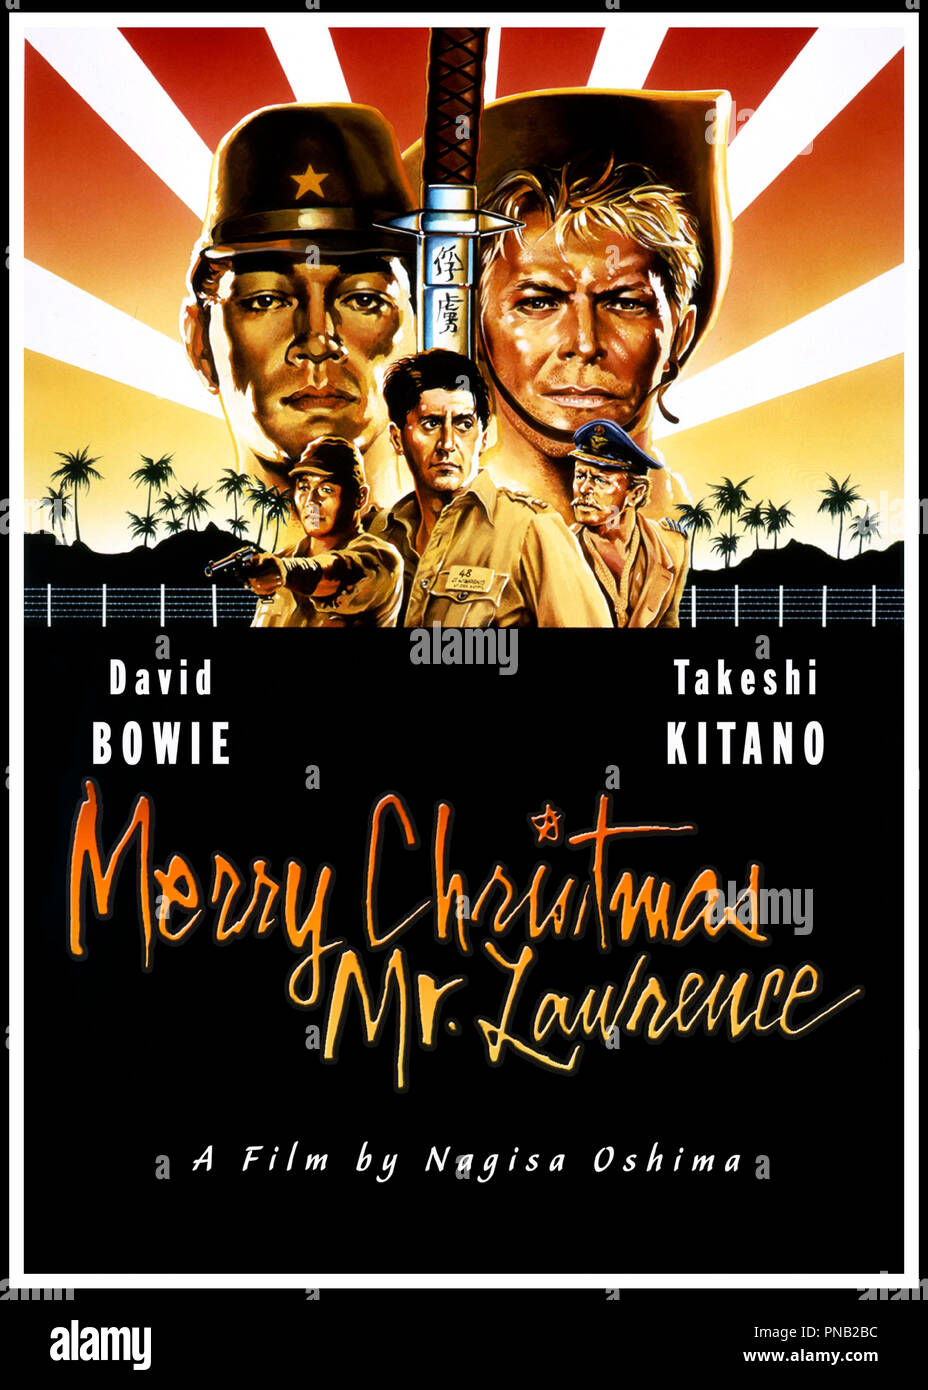 Merry Christmas Mr Lawrence.Merry Christmas Mr Lawrence David Bowie Stock Photos Merry